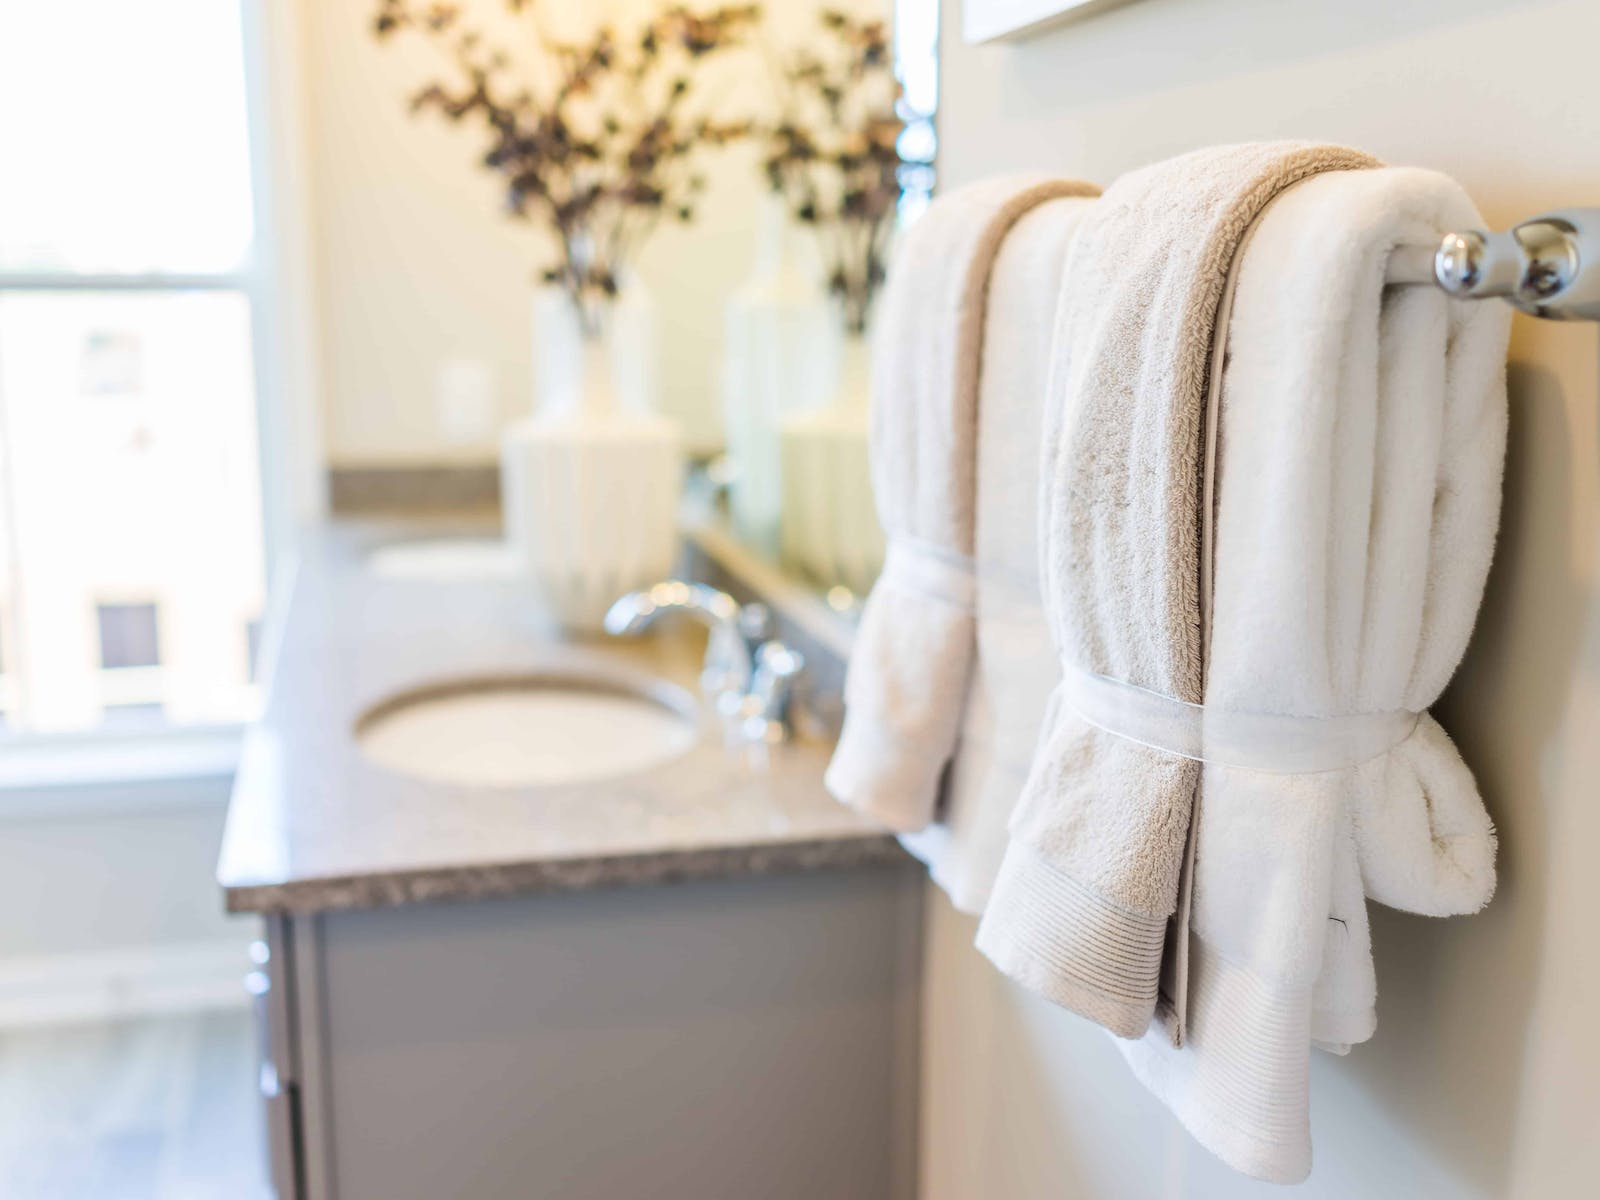 Professionally folded towels in a bathroom